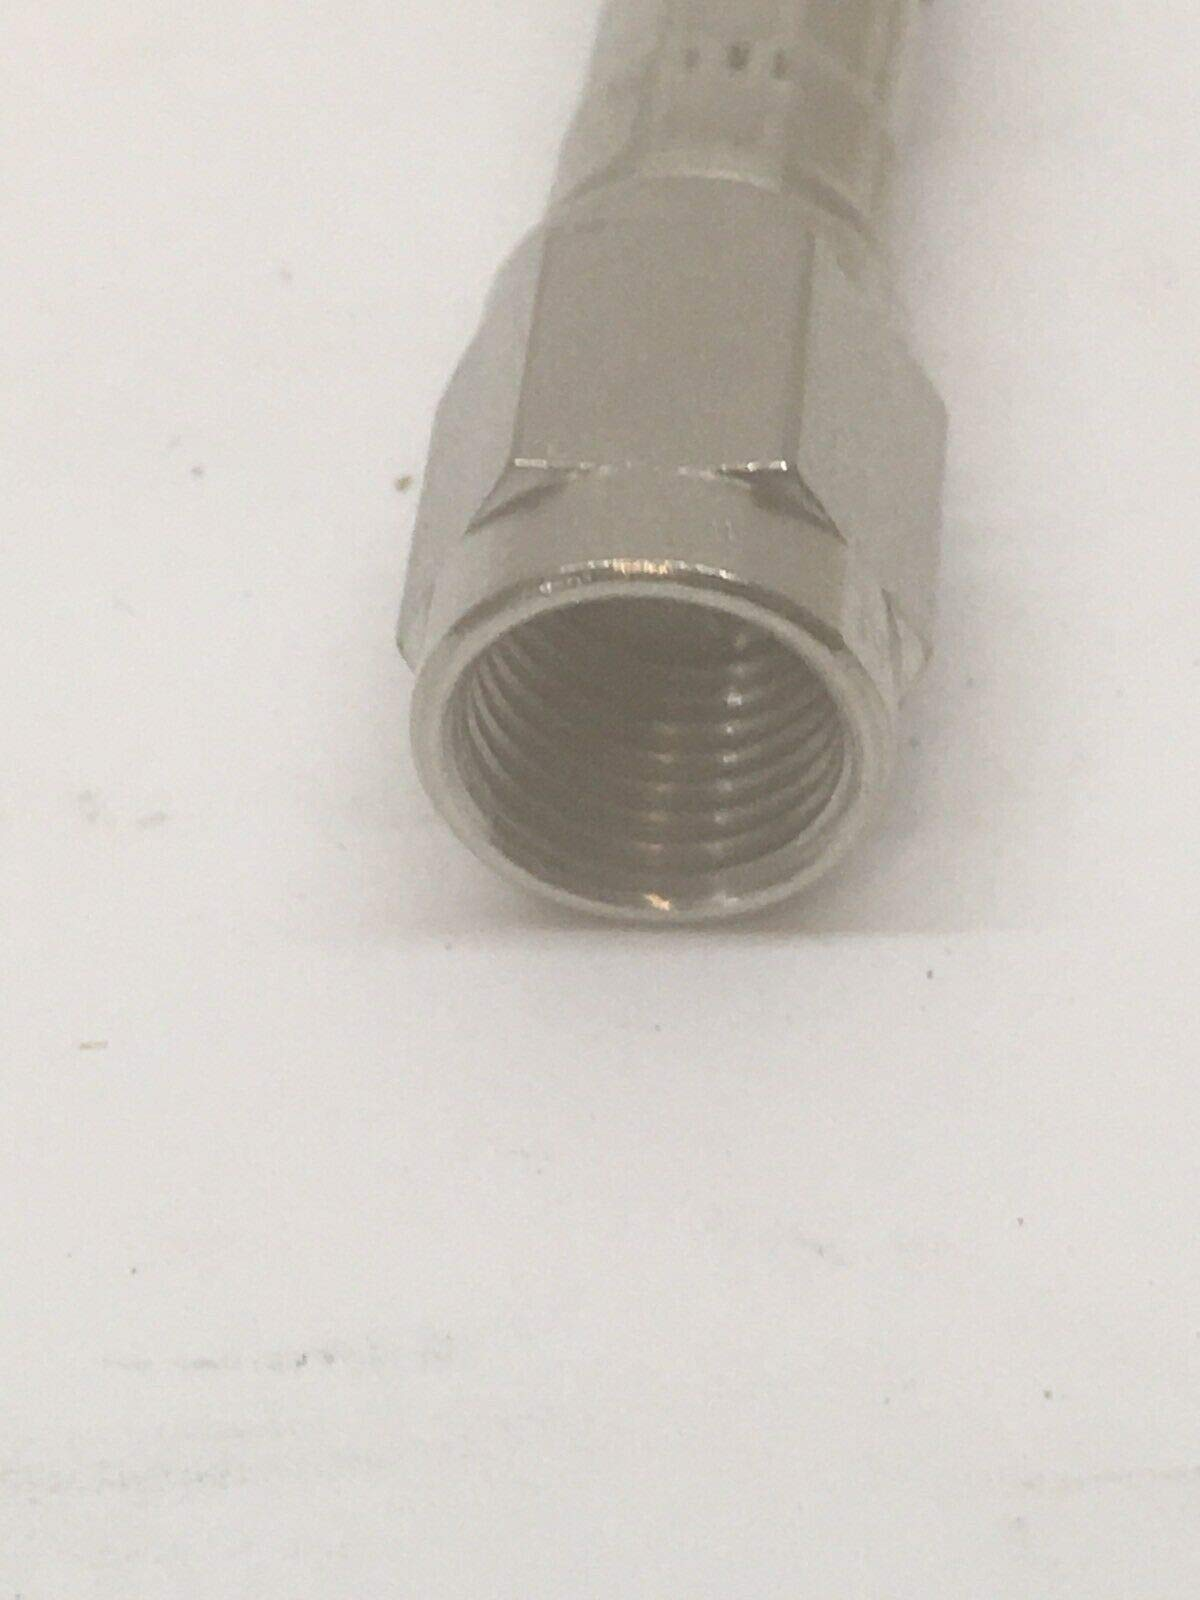 Size 3 Flared PFTE Hose Assembly MS8005B082AB by Unknown (Image #3)